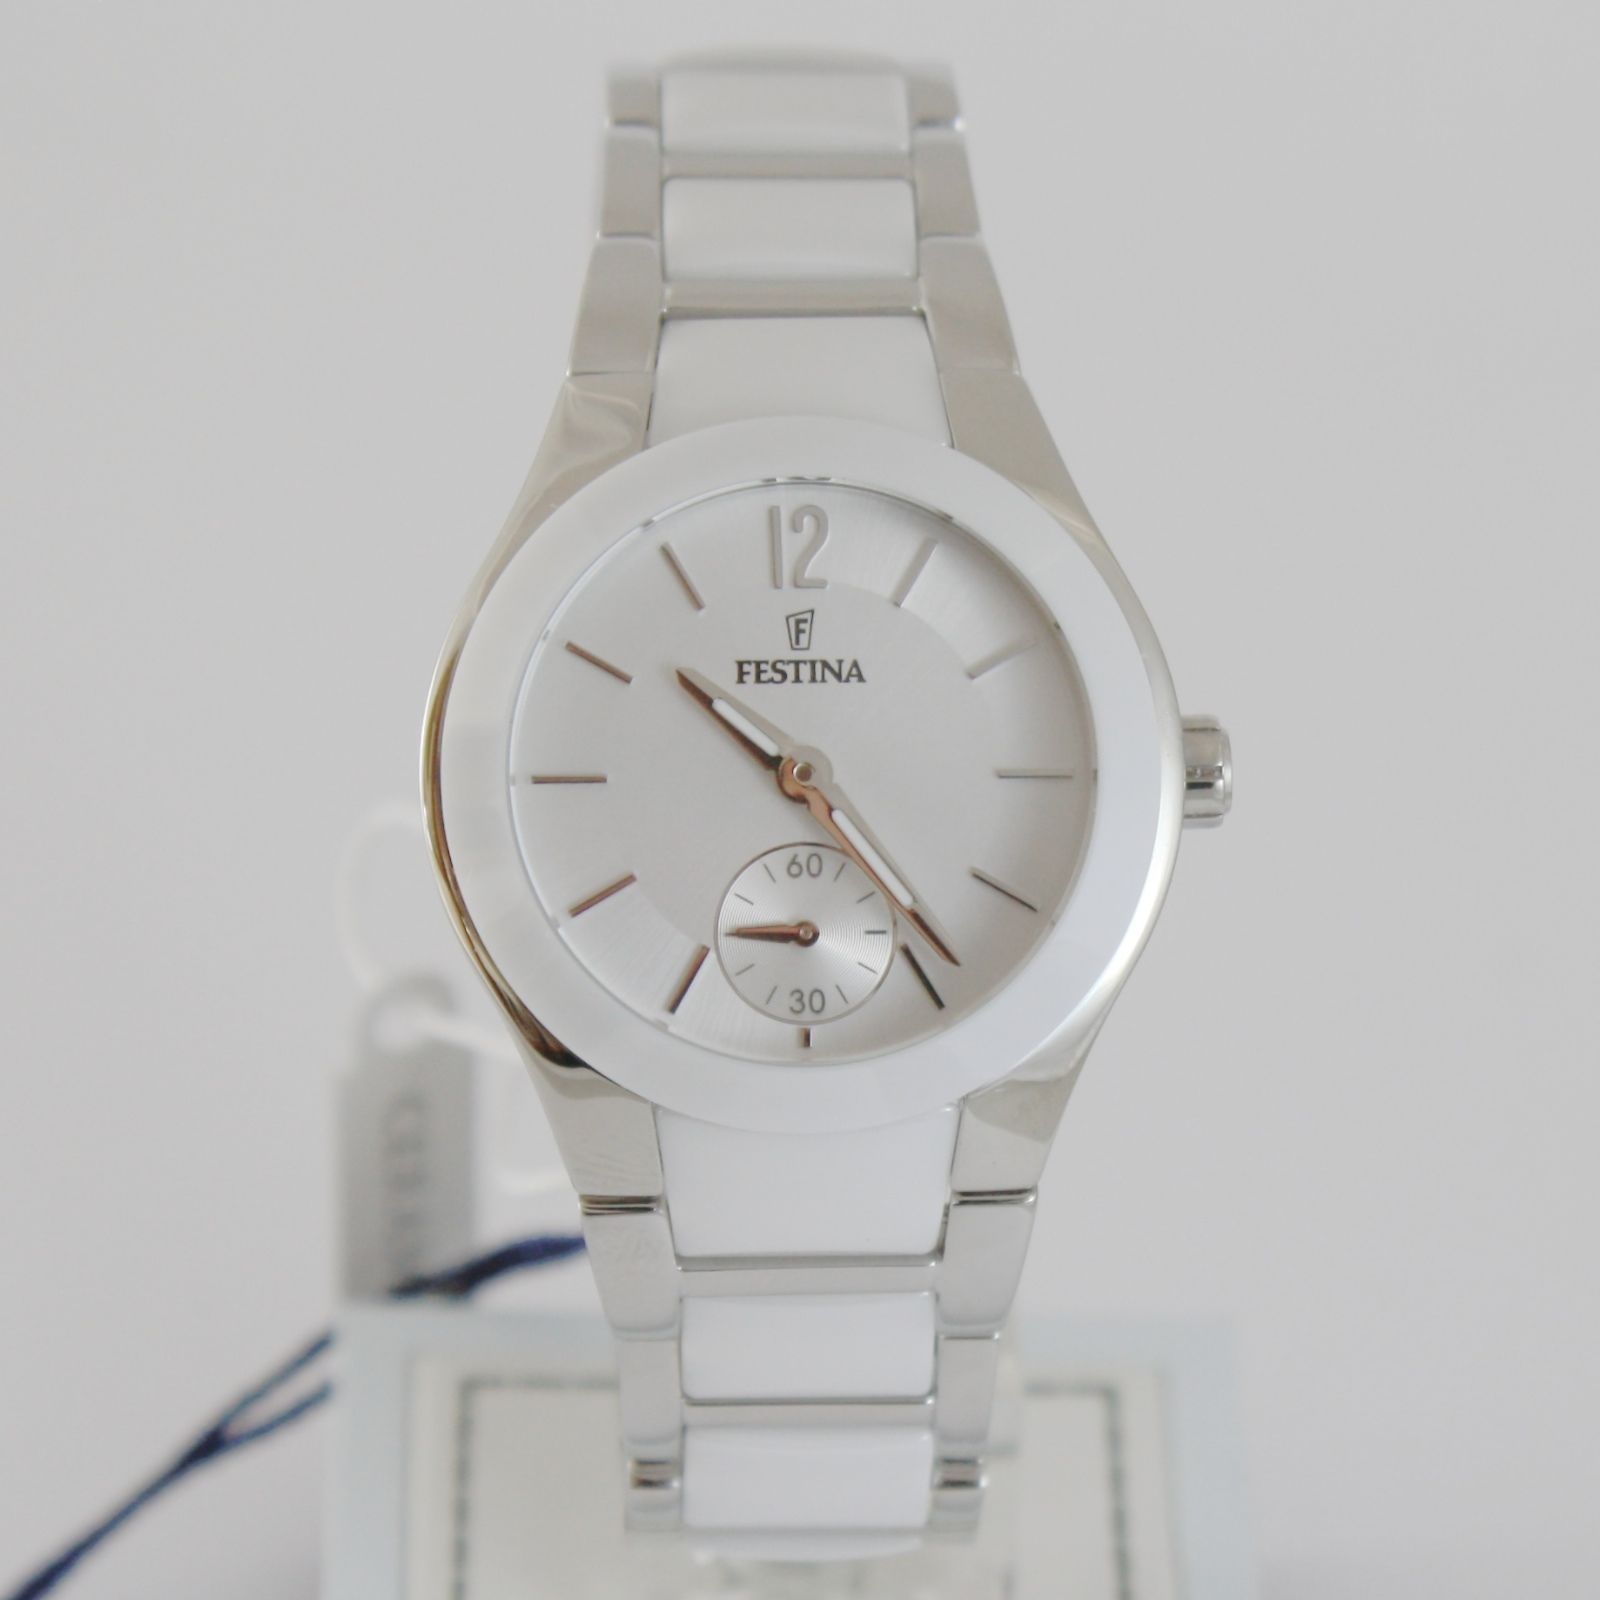 FESTINA WATCH QUARTZ MOVEMENT 33 MM CASE 5 ATM WHITE FACE WHITE CERAMIC BAND